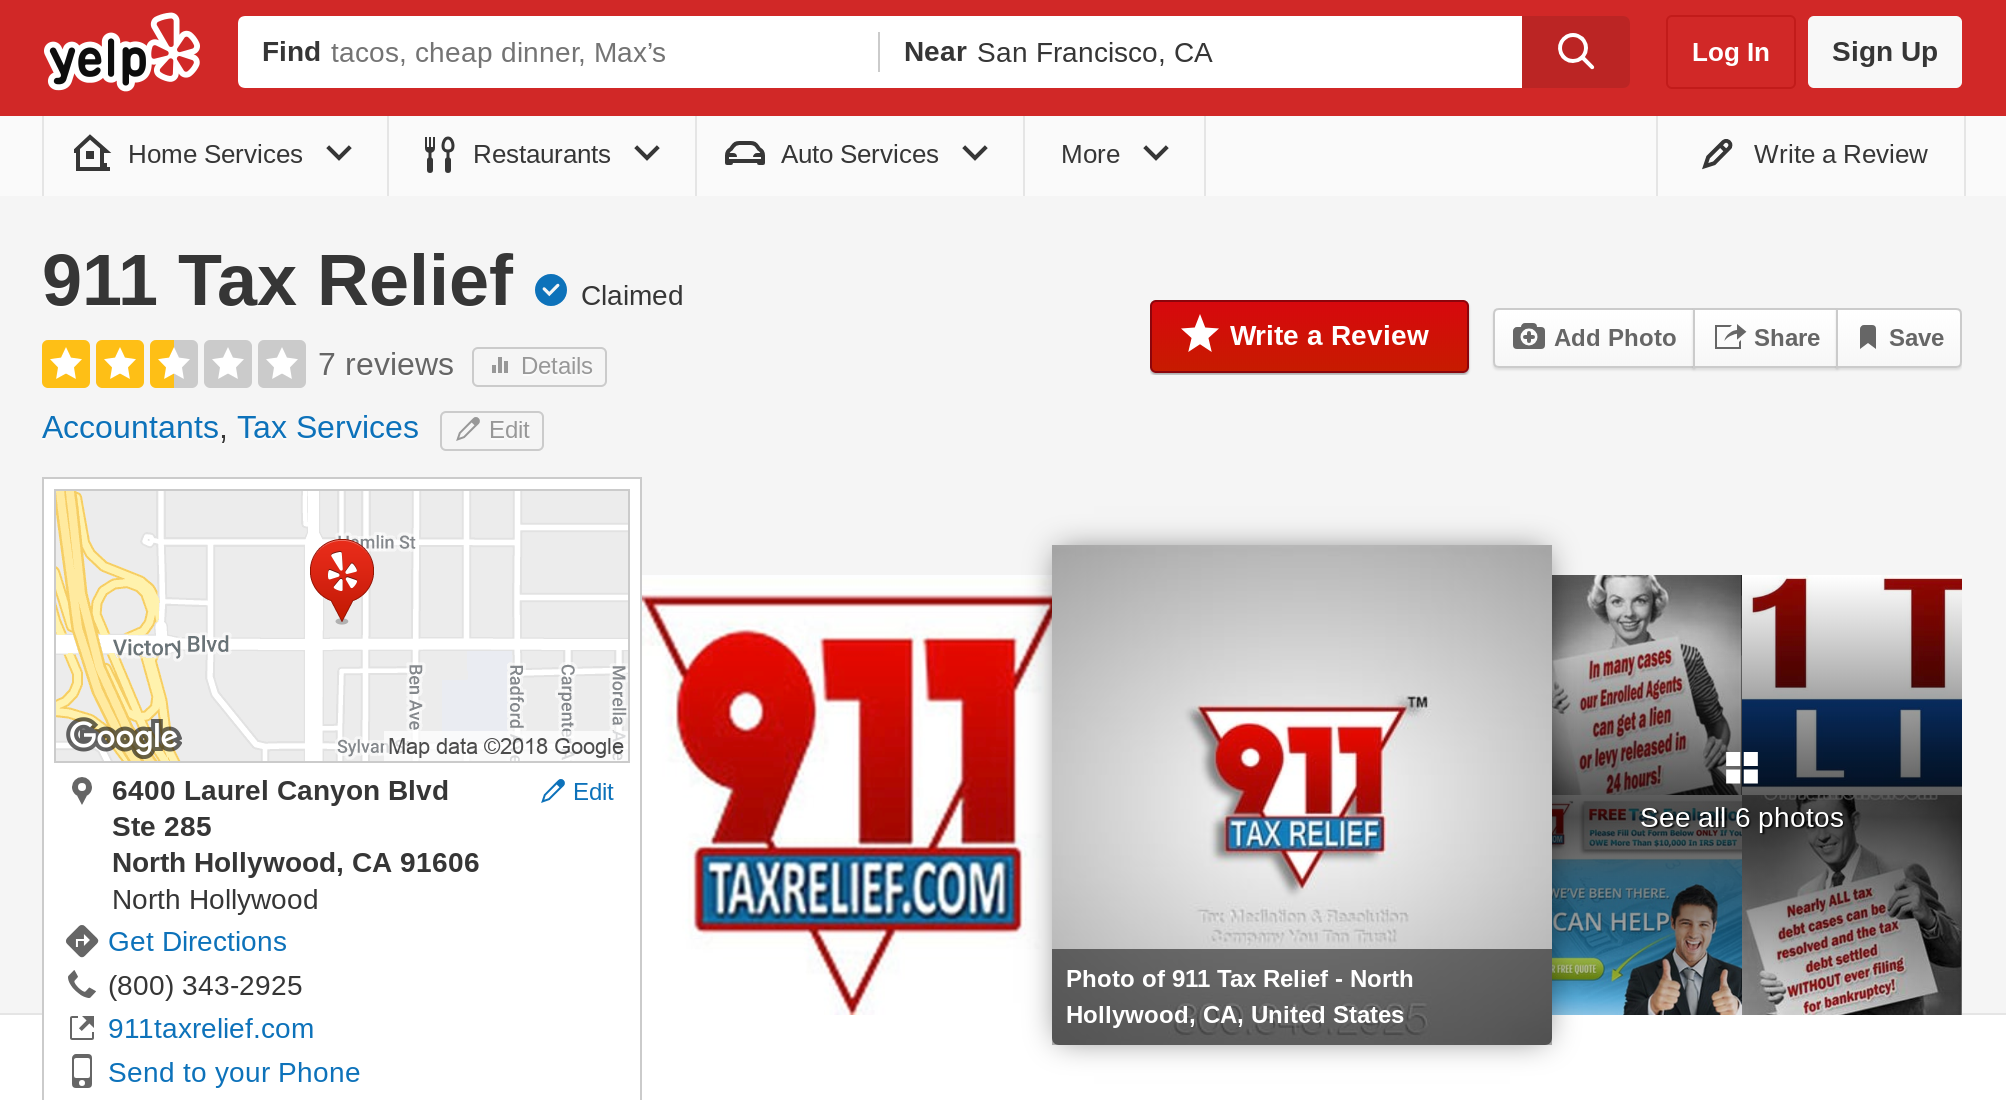 911 tax relief yelp page